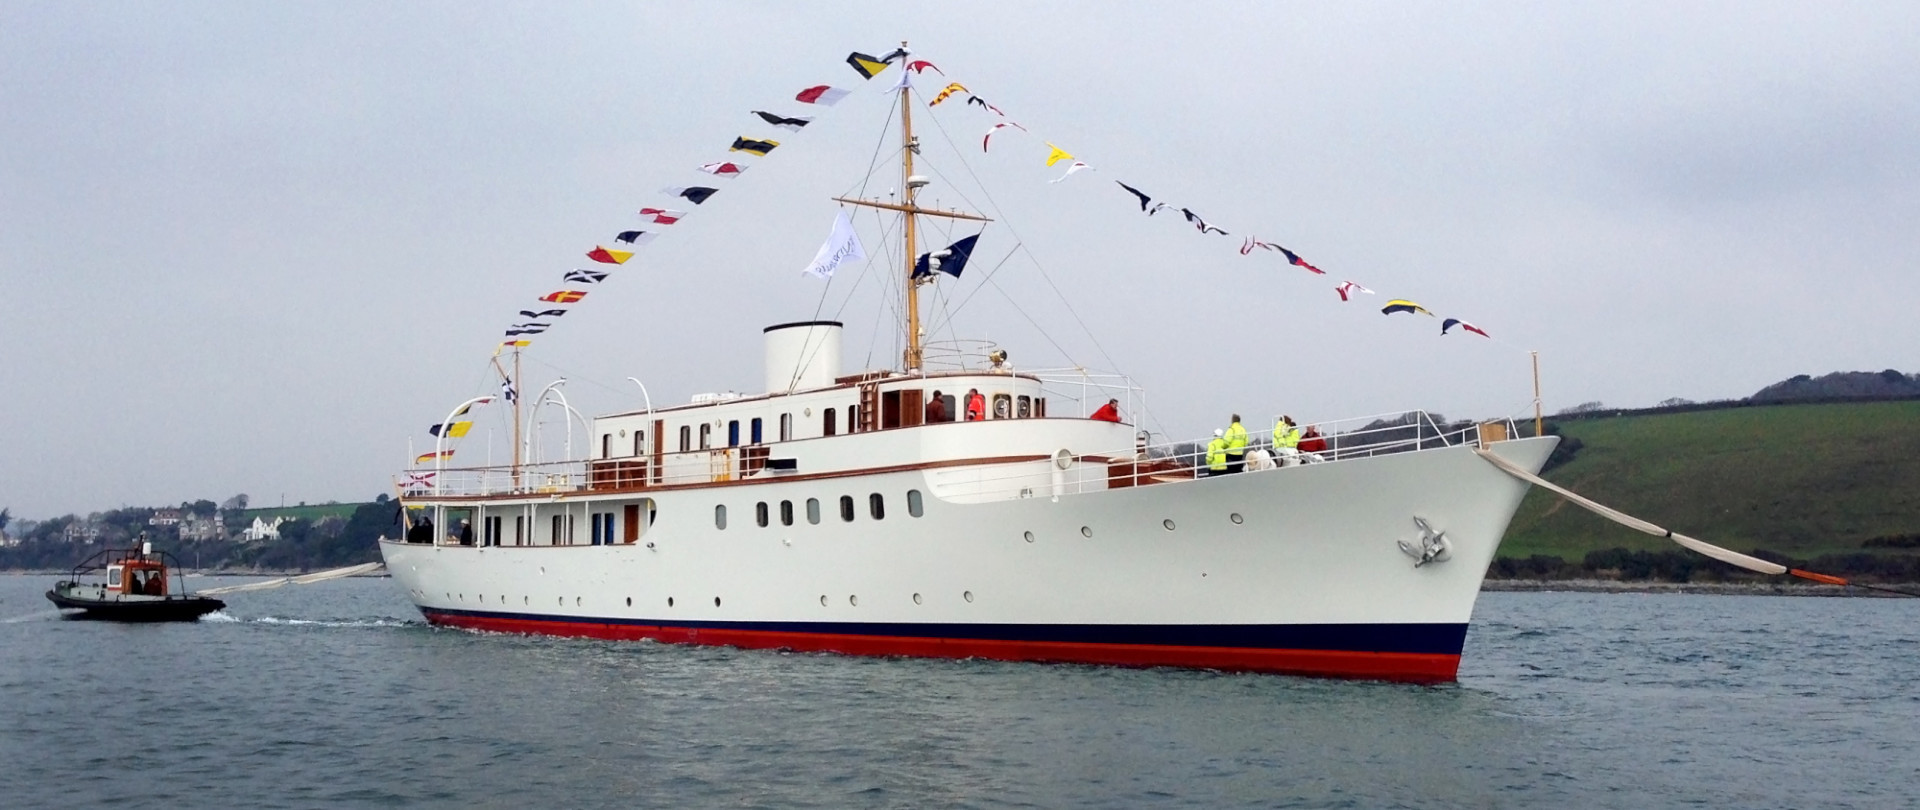 Classic Yacht MALAHNE Restored & Relaunched photo 1